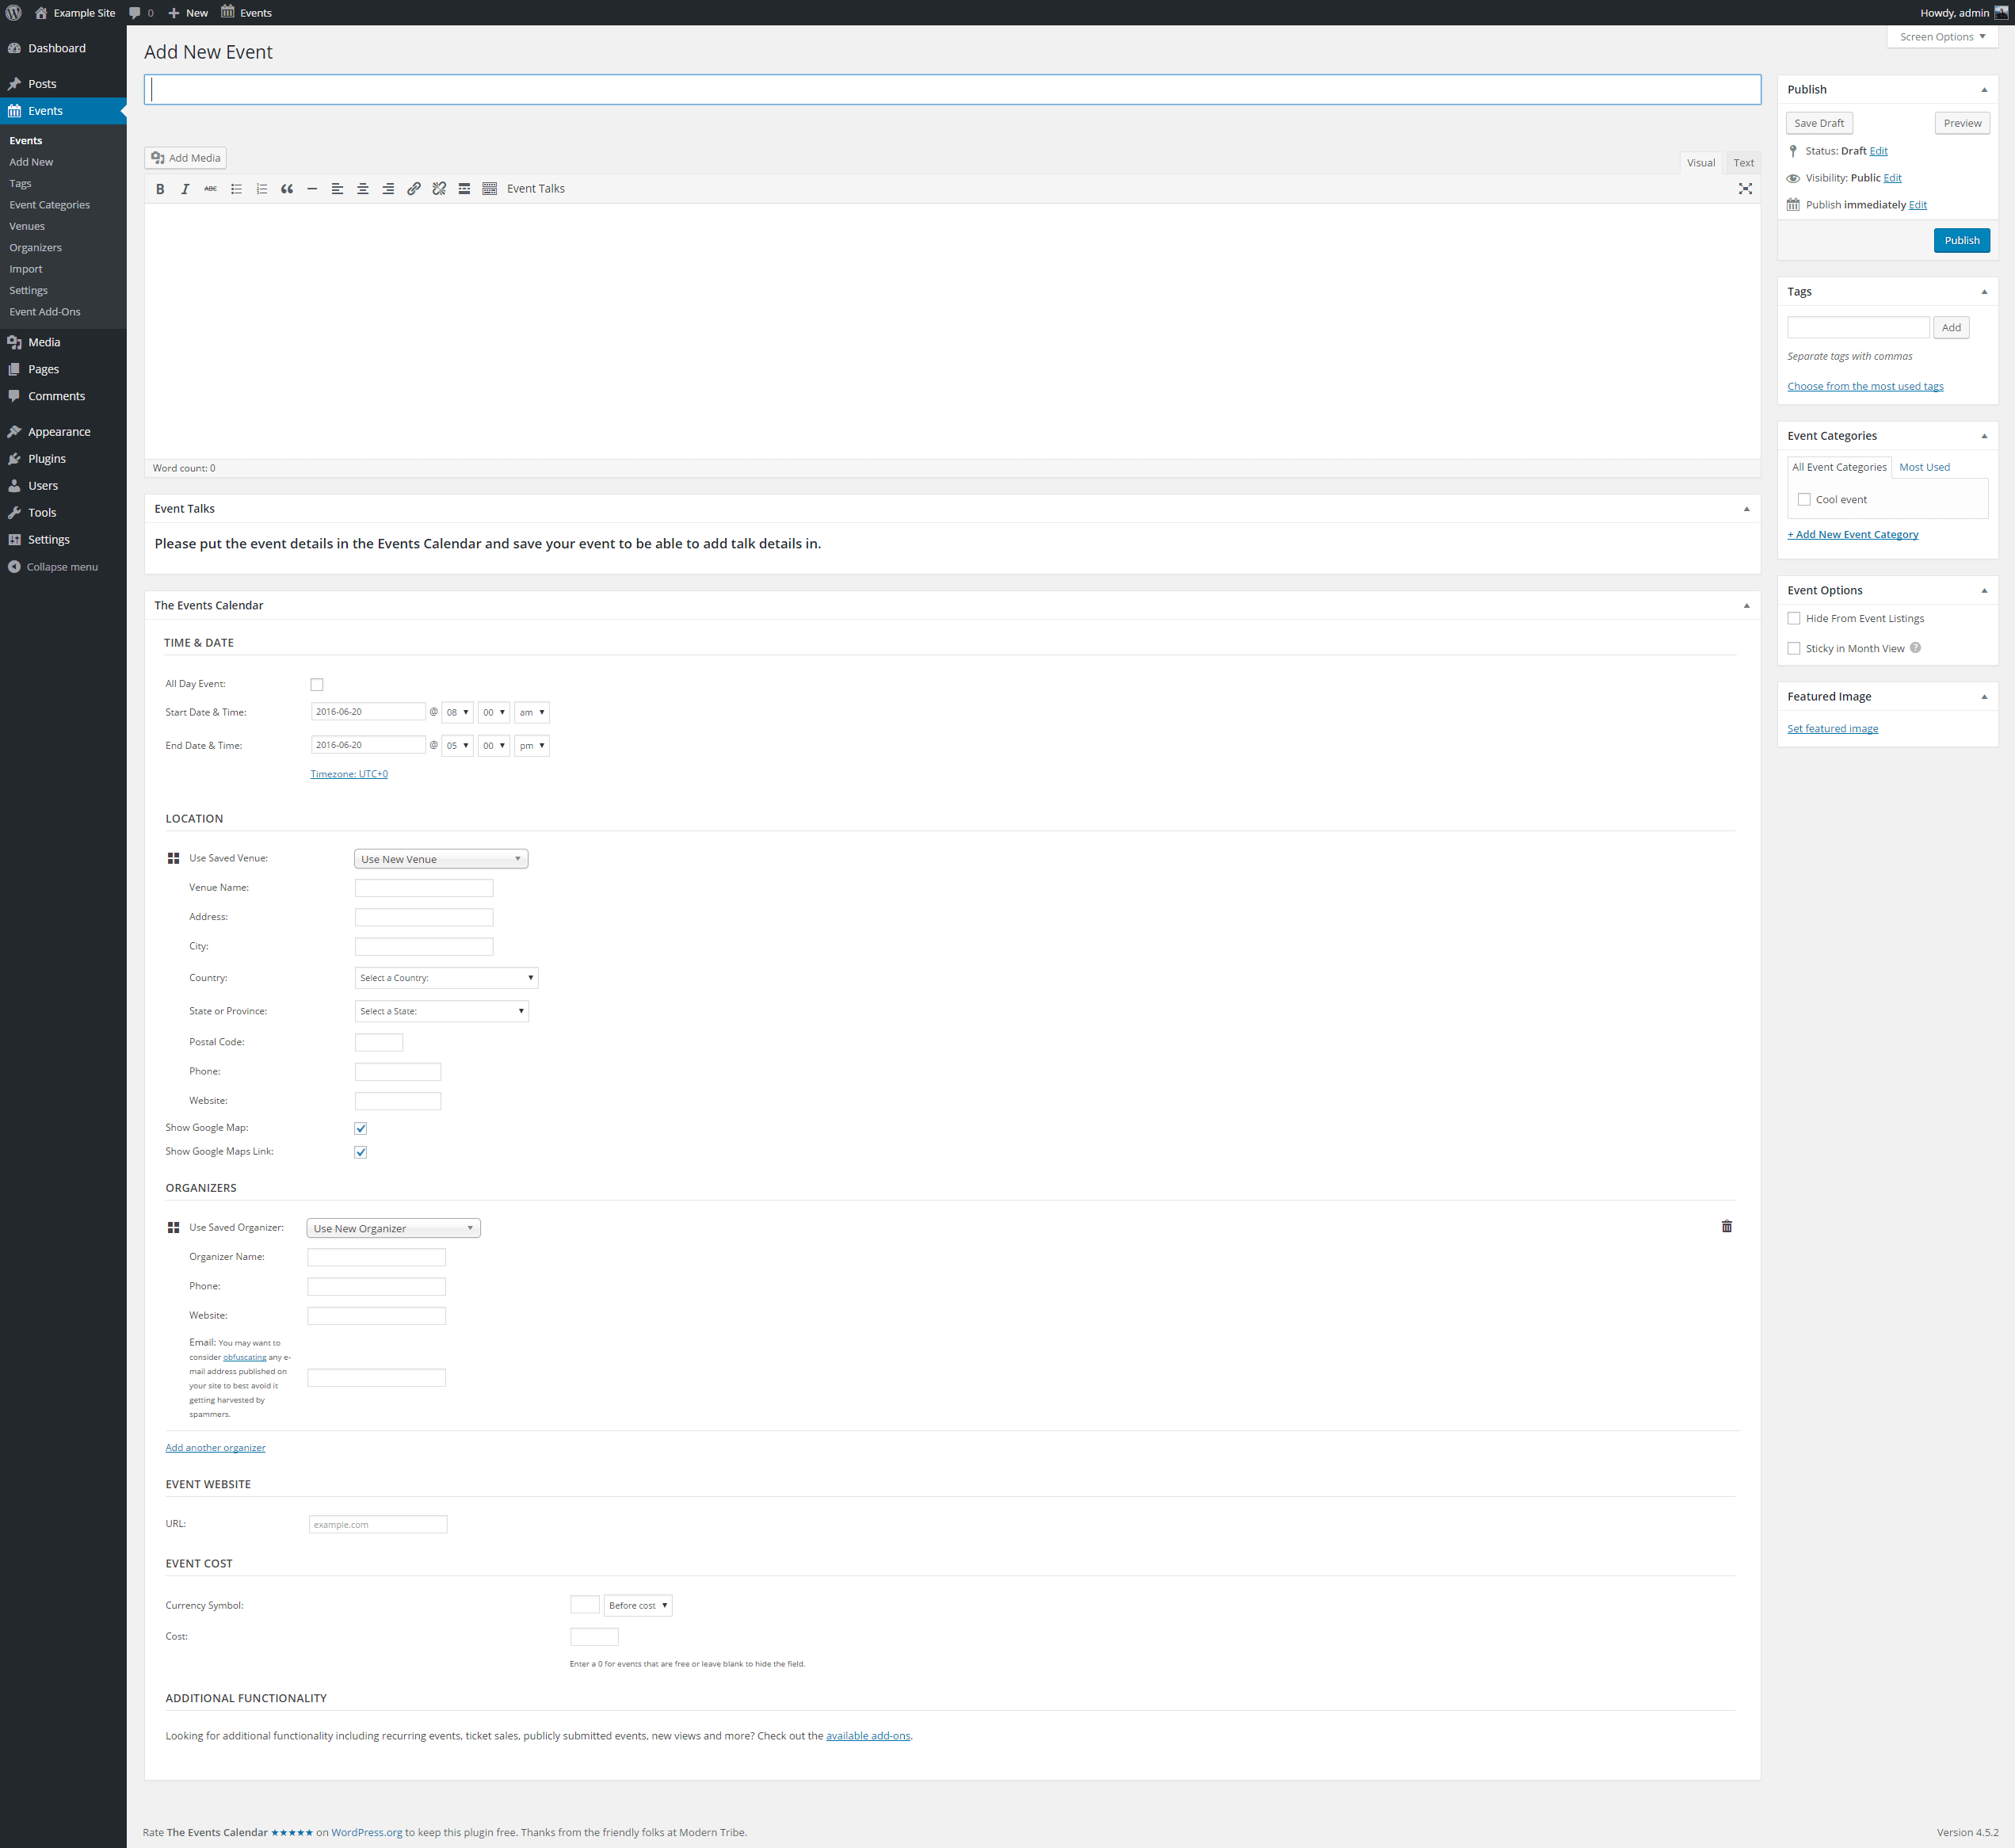 Creating an empty event